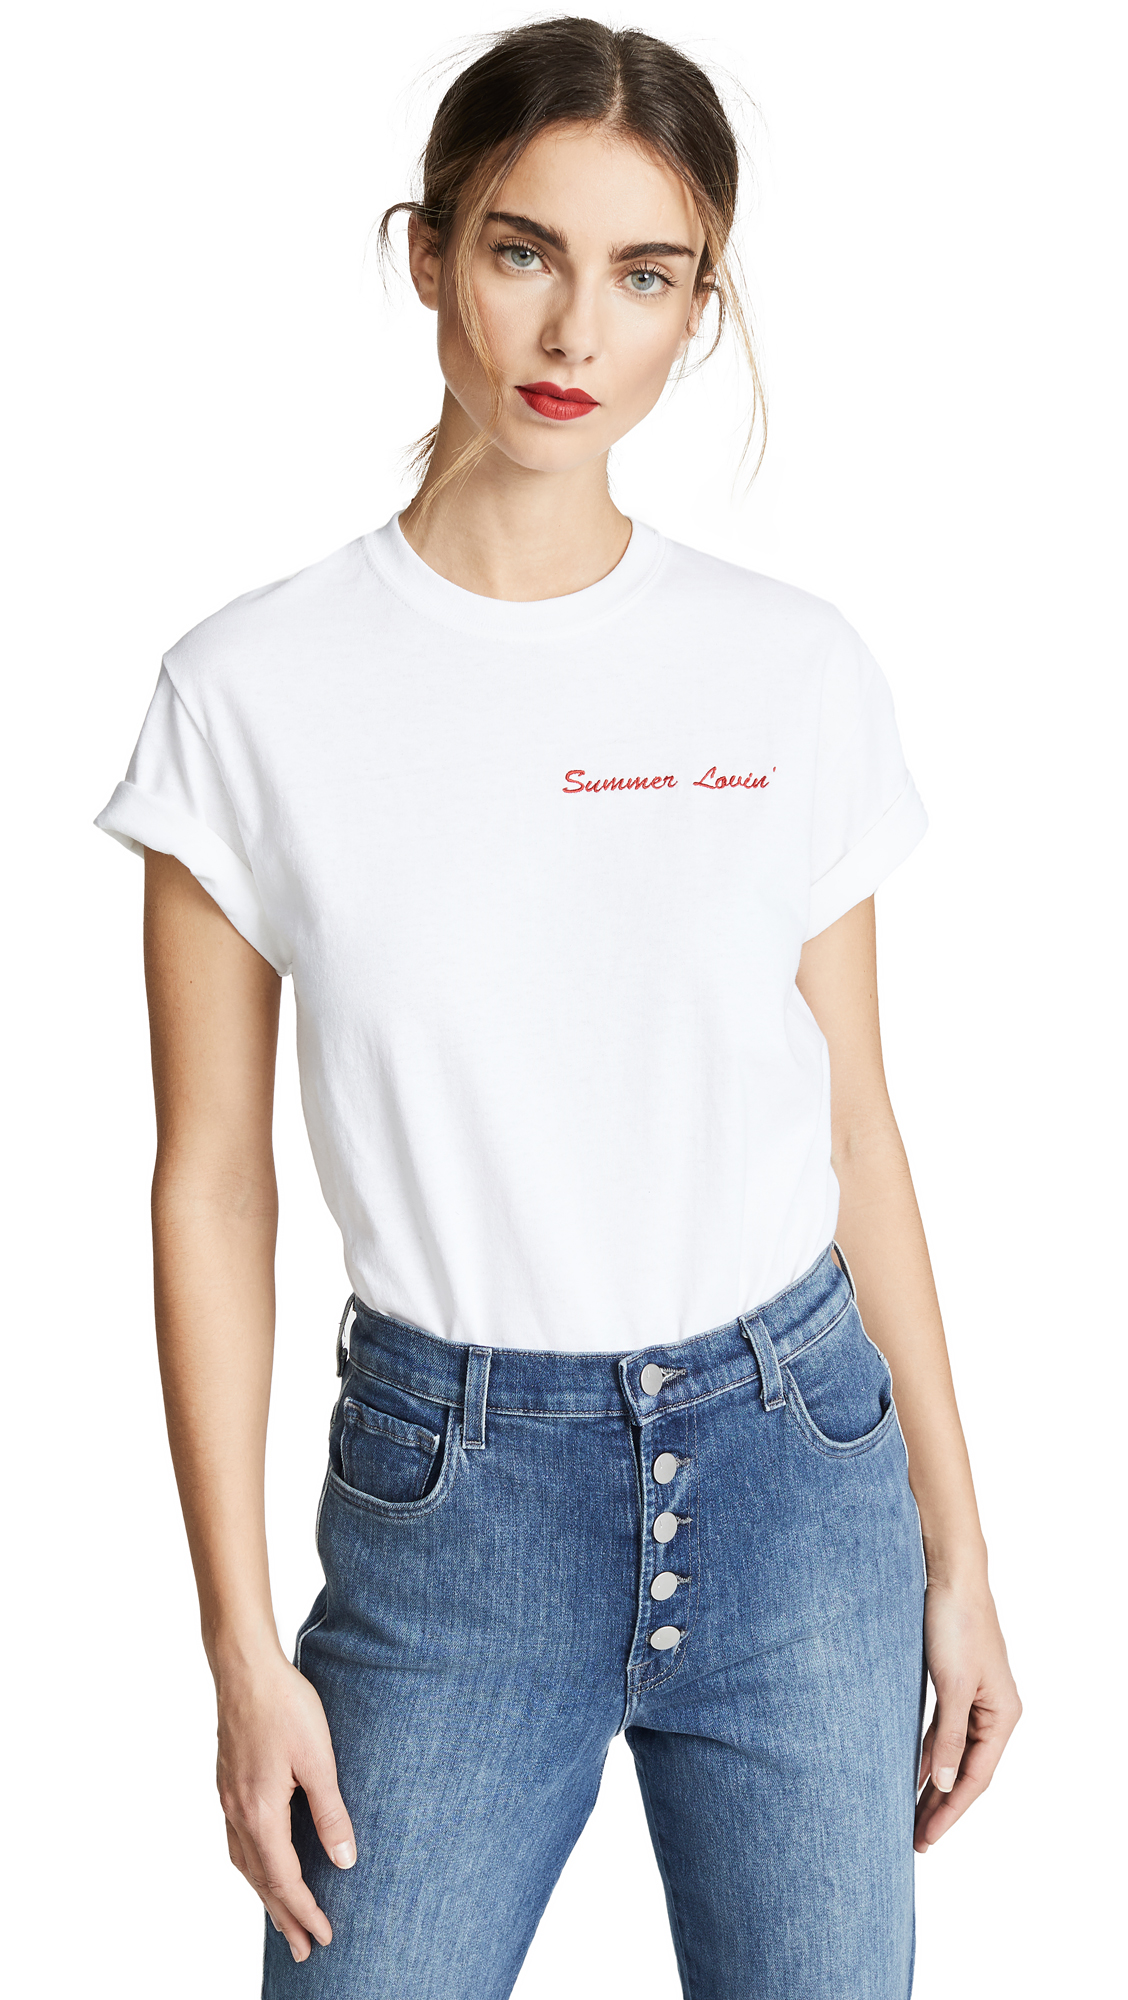 DOUBLE TROUBLE GANG Summer Lovin Tee in White